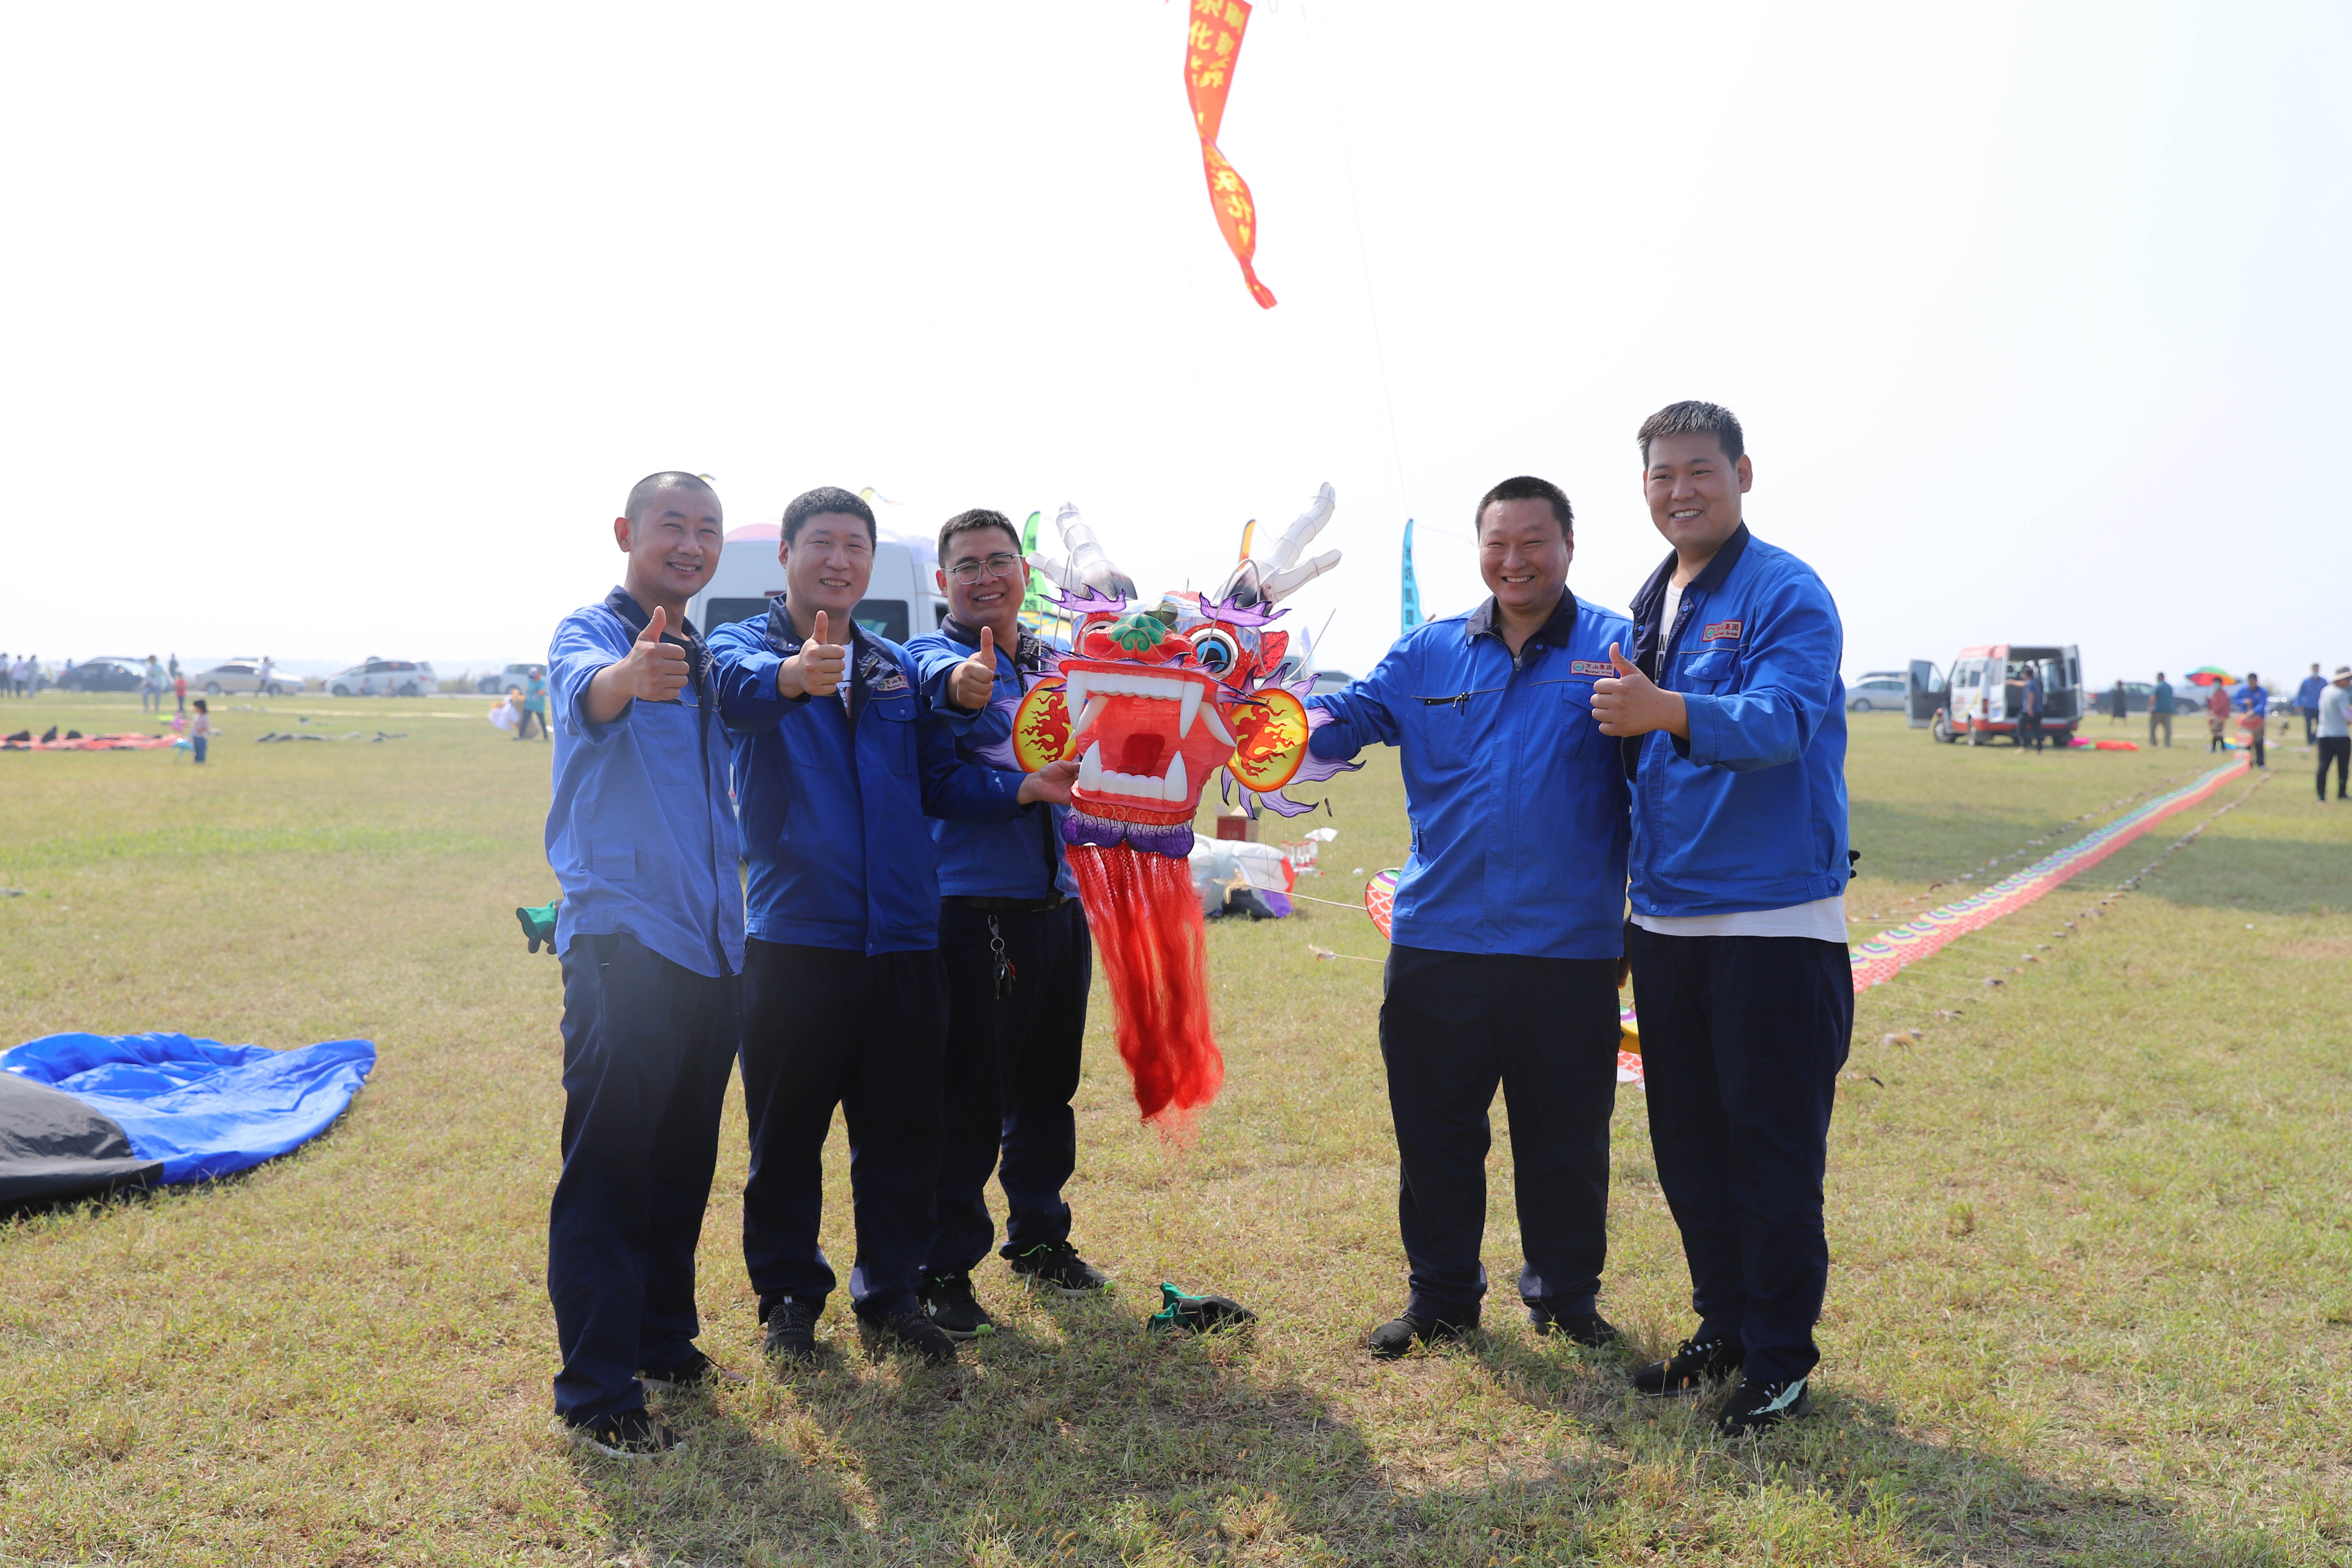 Wan Kite flying, blooming beautifully—Wanshan Group assisted the grand opening of the 37th Weifang International Kite Festival